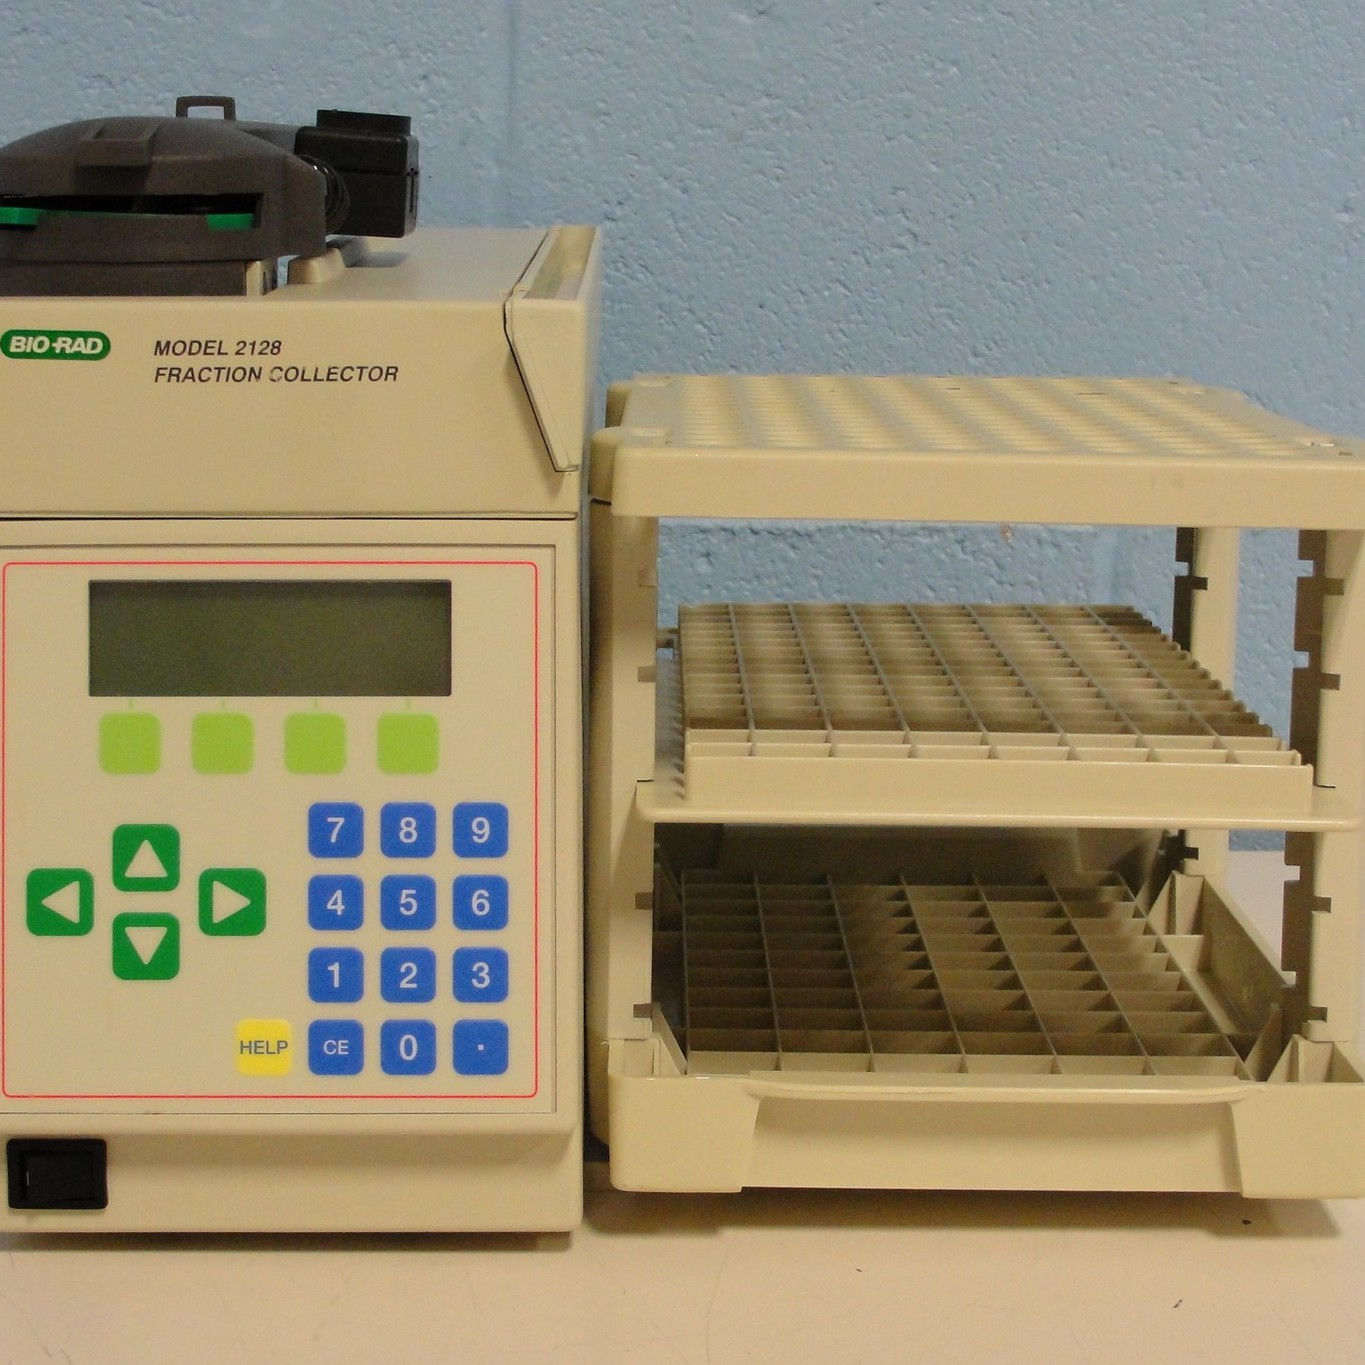 Model 2128 Fraction Collector